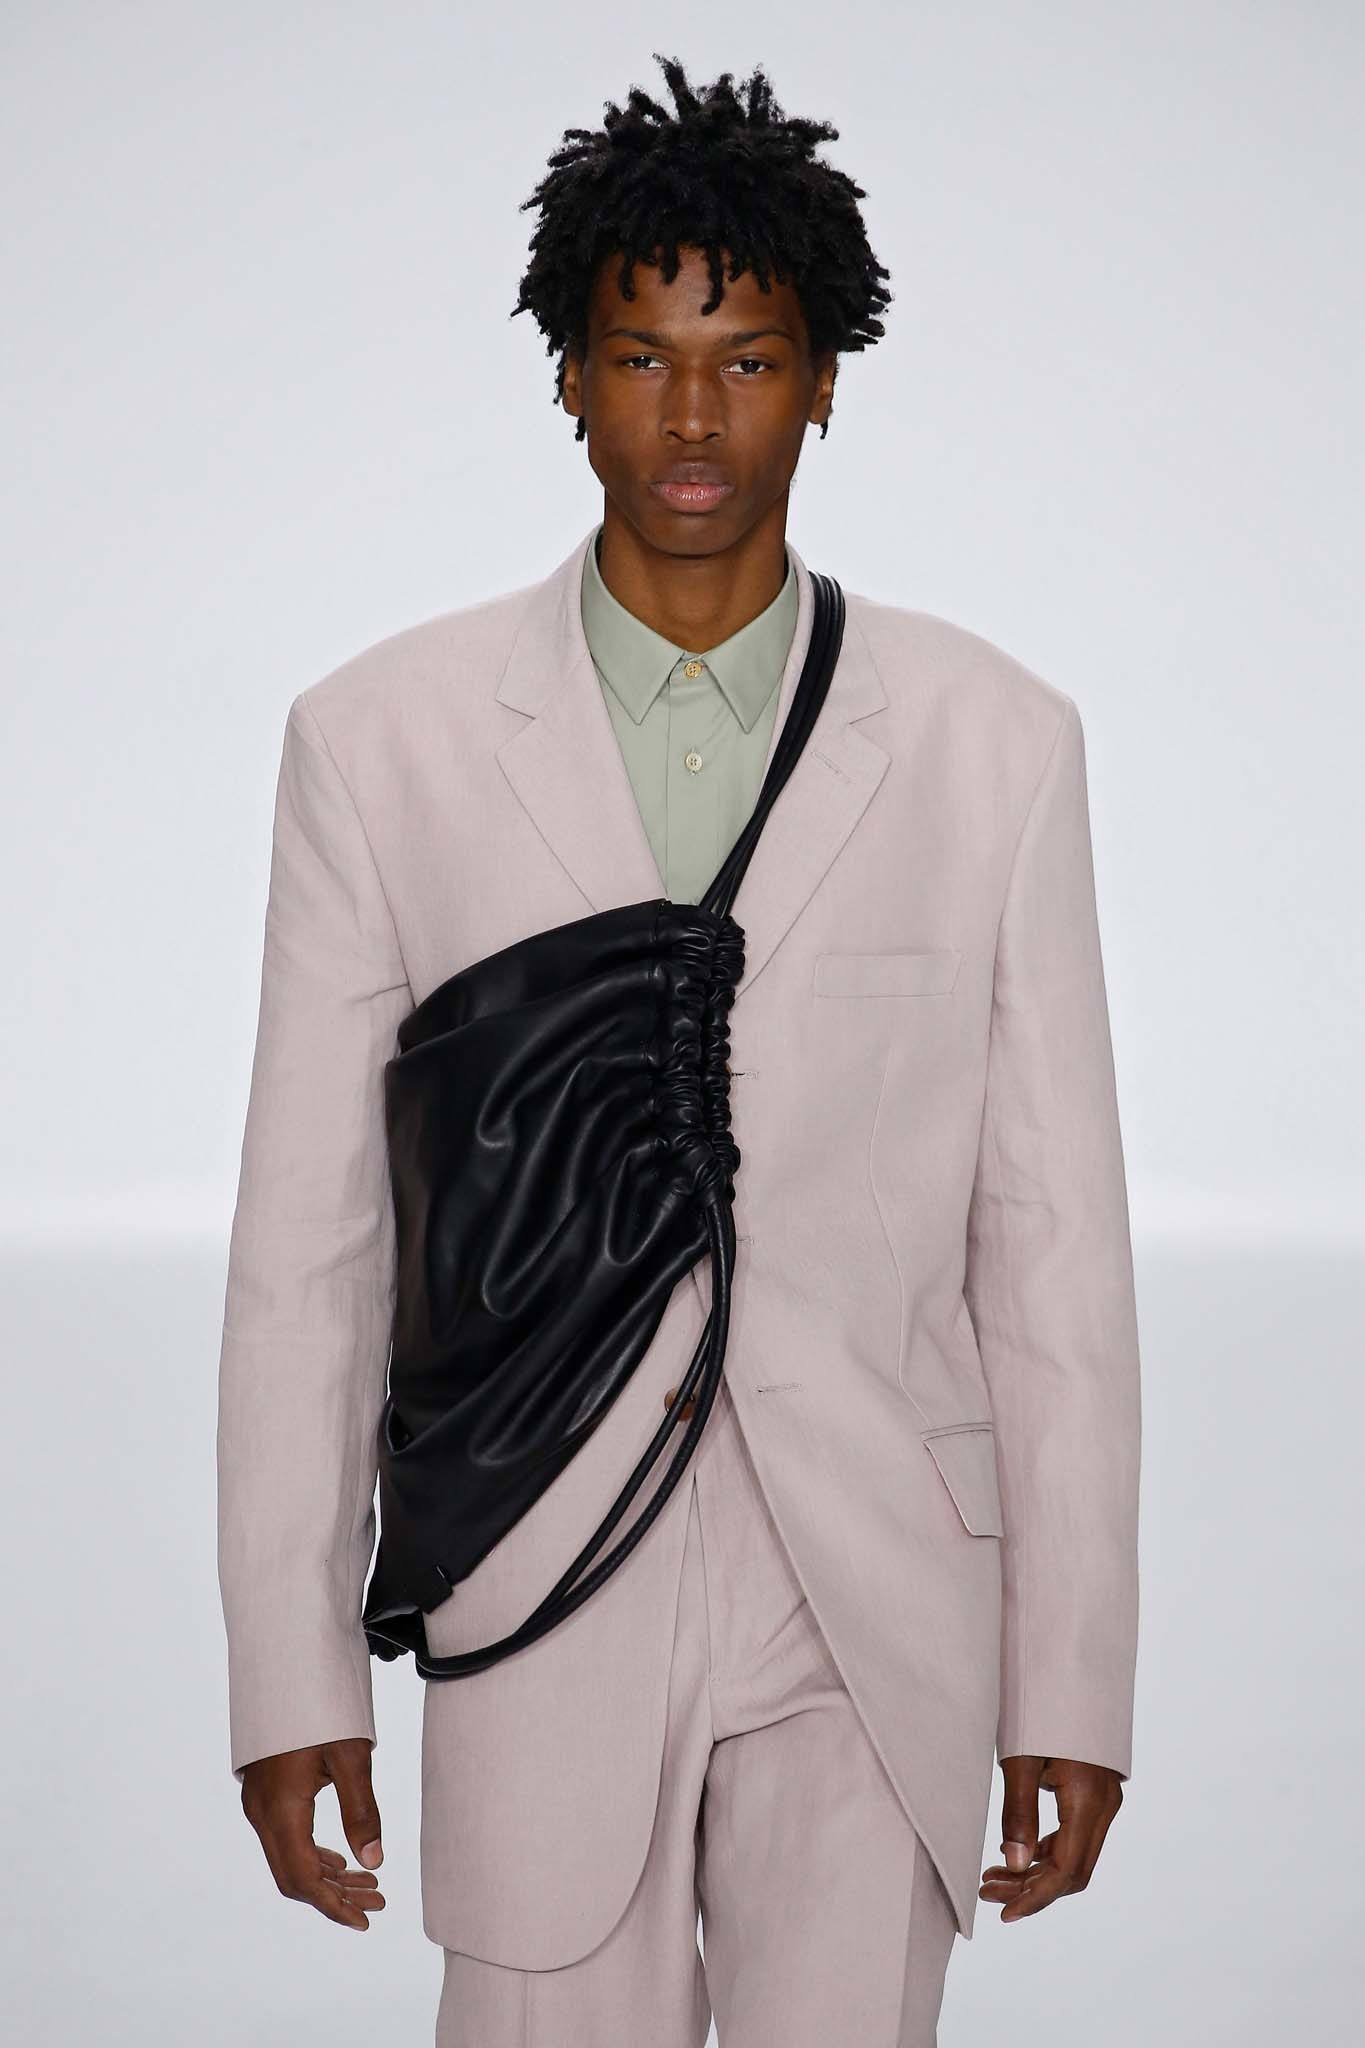 Male runway model with twisted natural hair